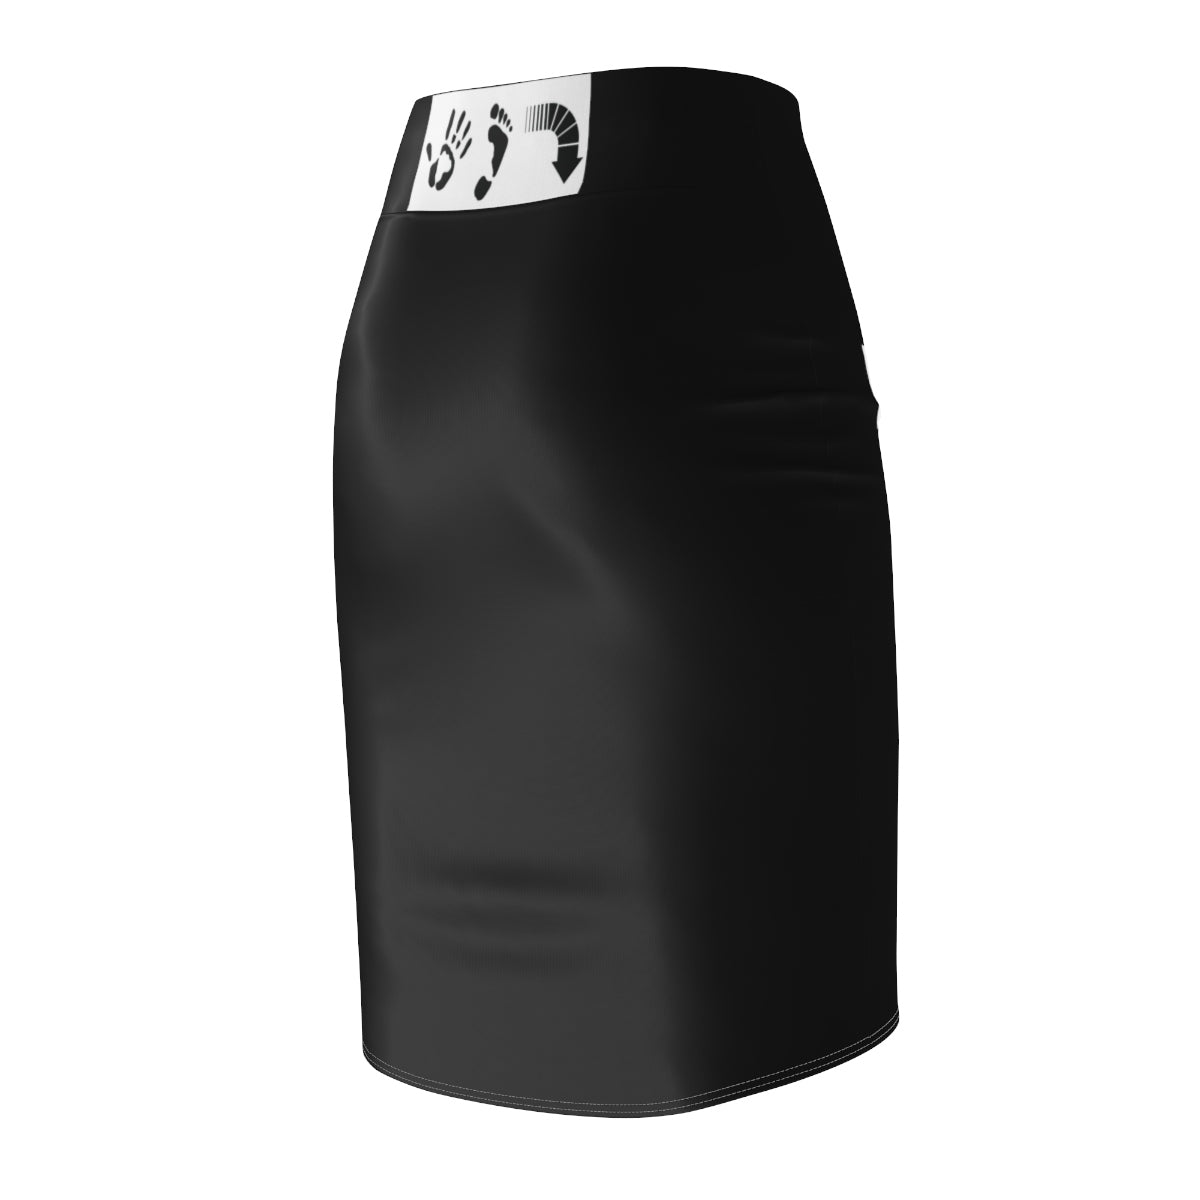 Five Toes Down Polka Dot Blk Women's Pencil Skirt